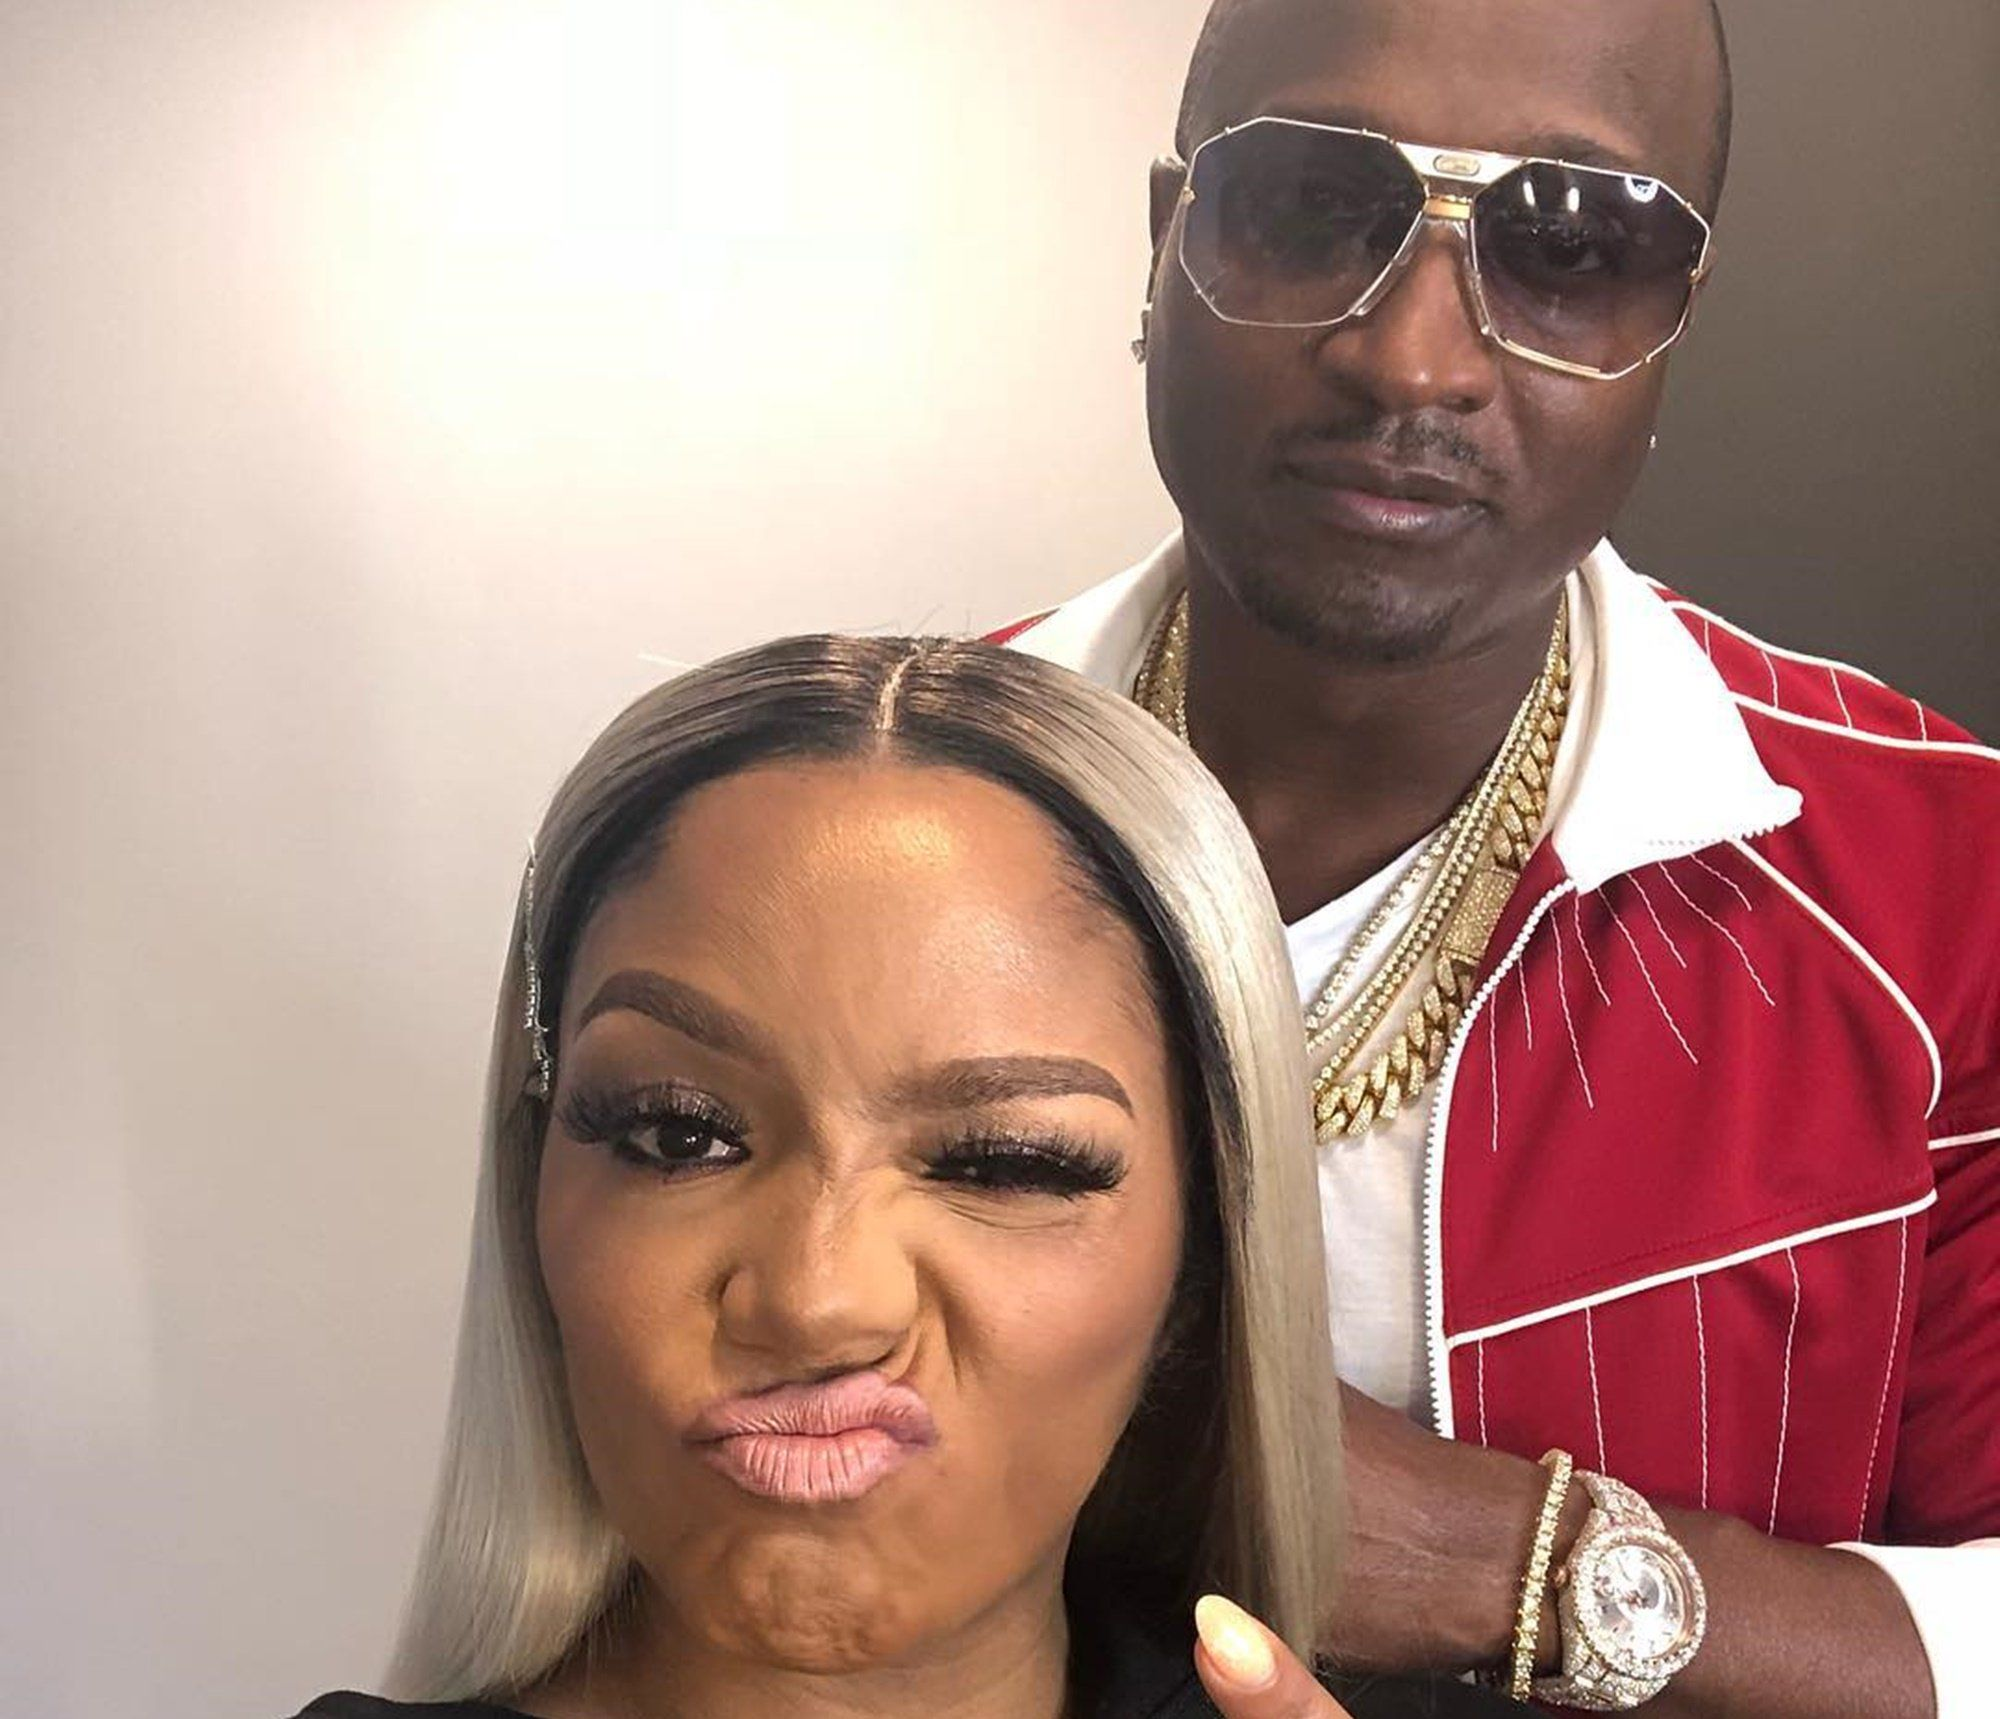 Rasheeda Frost Presents Fans Her Next Exciting Project That Will Take Place In Her New Bistro In Atlanta - Fans See Something Weird Related To Kirk Frost In The Photo She Shared